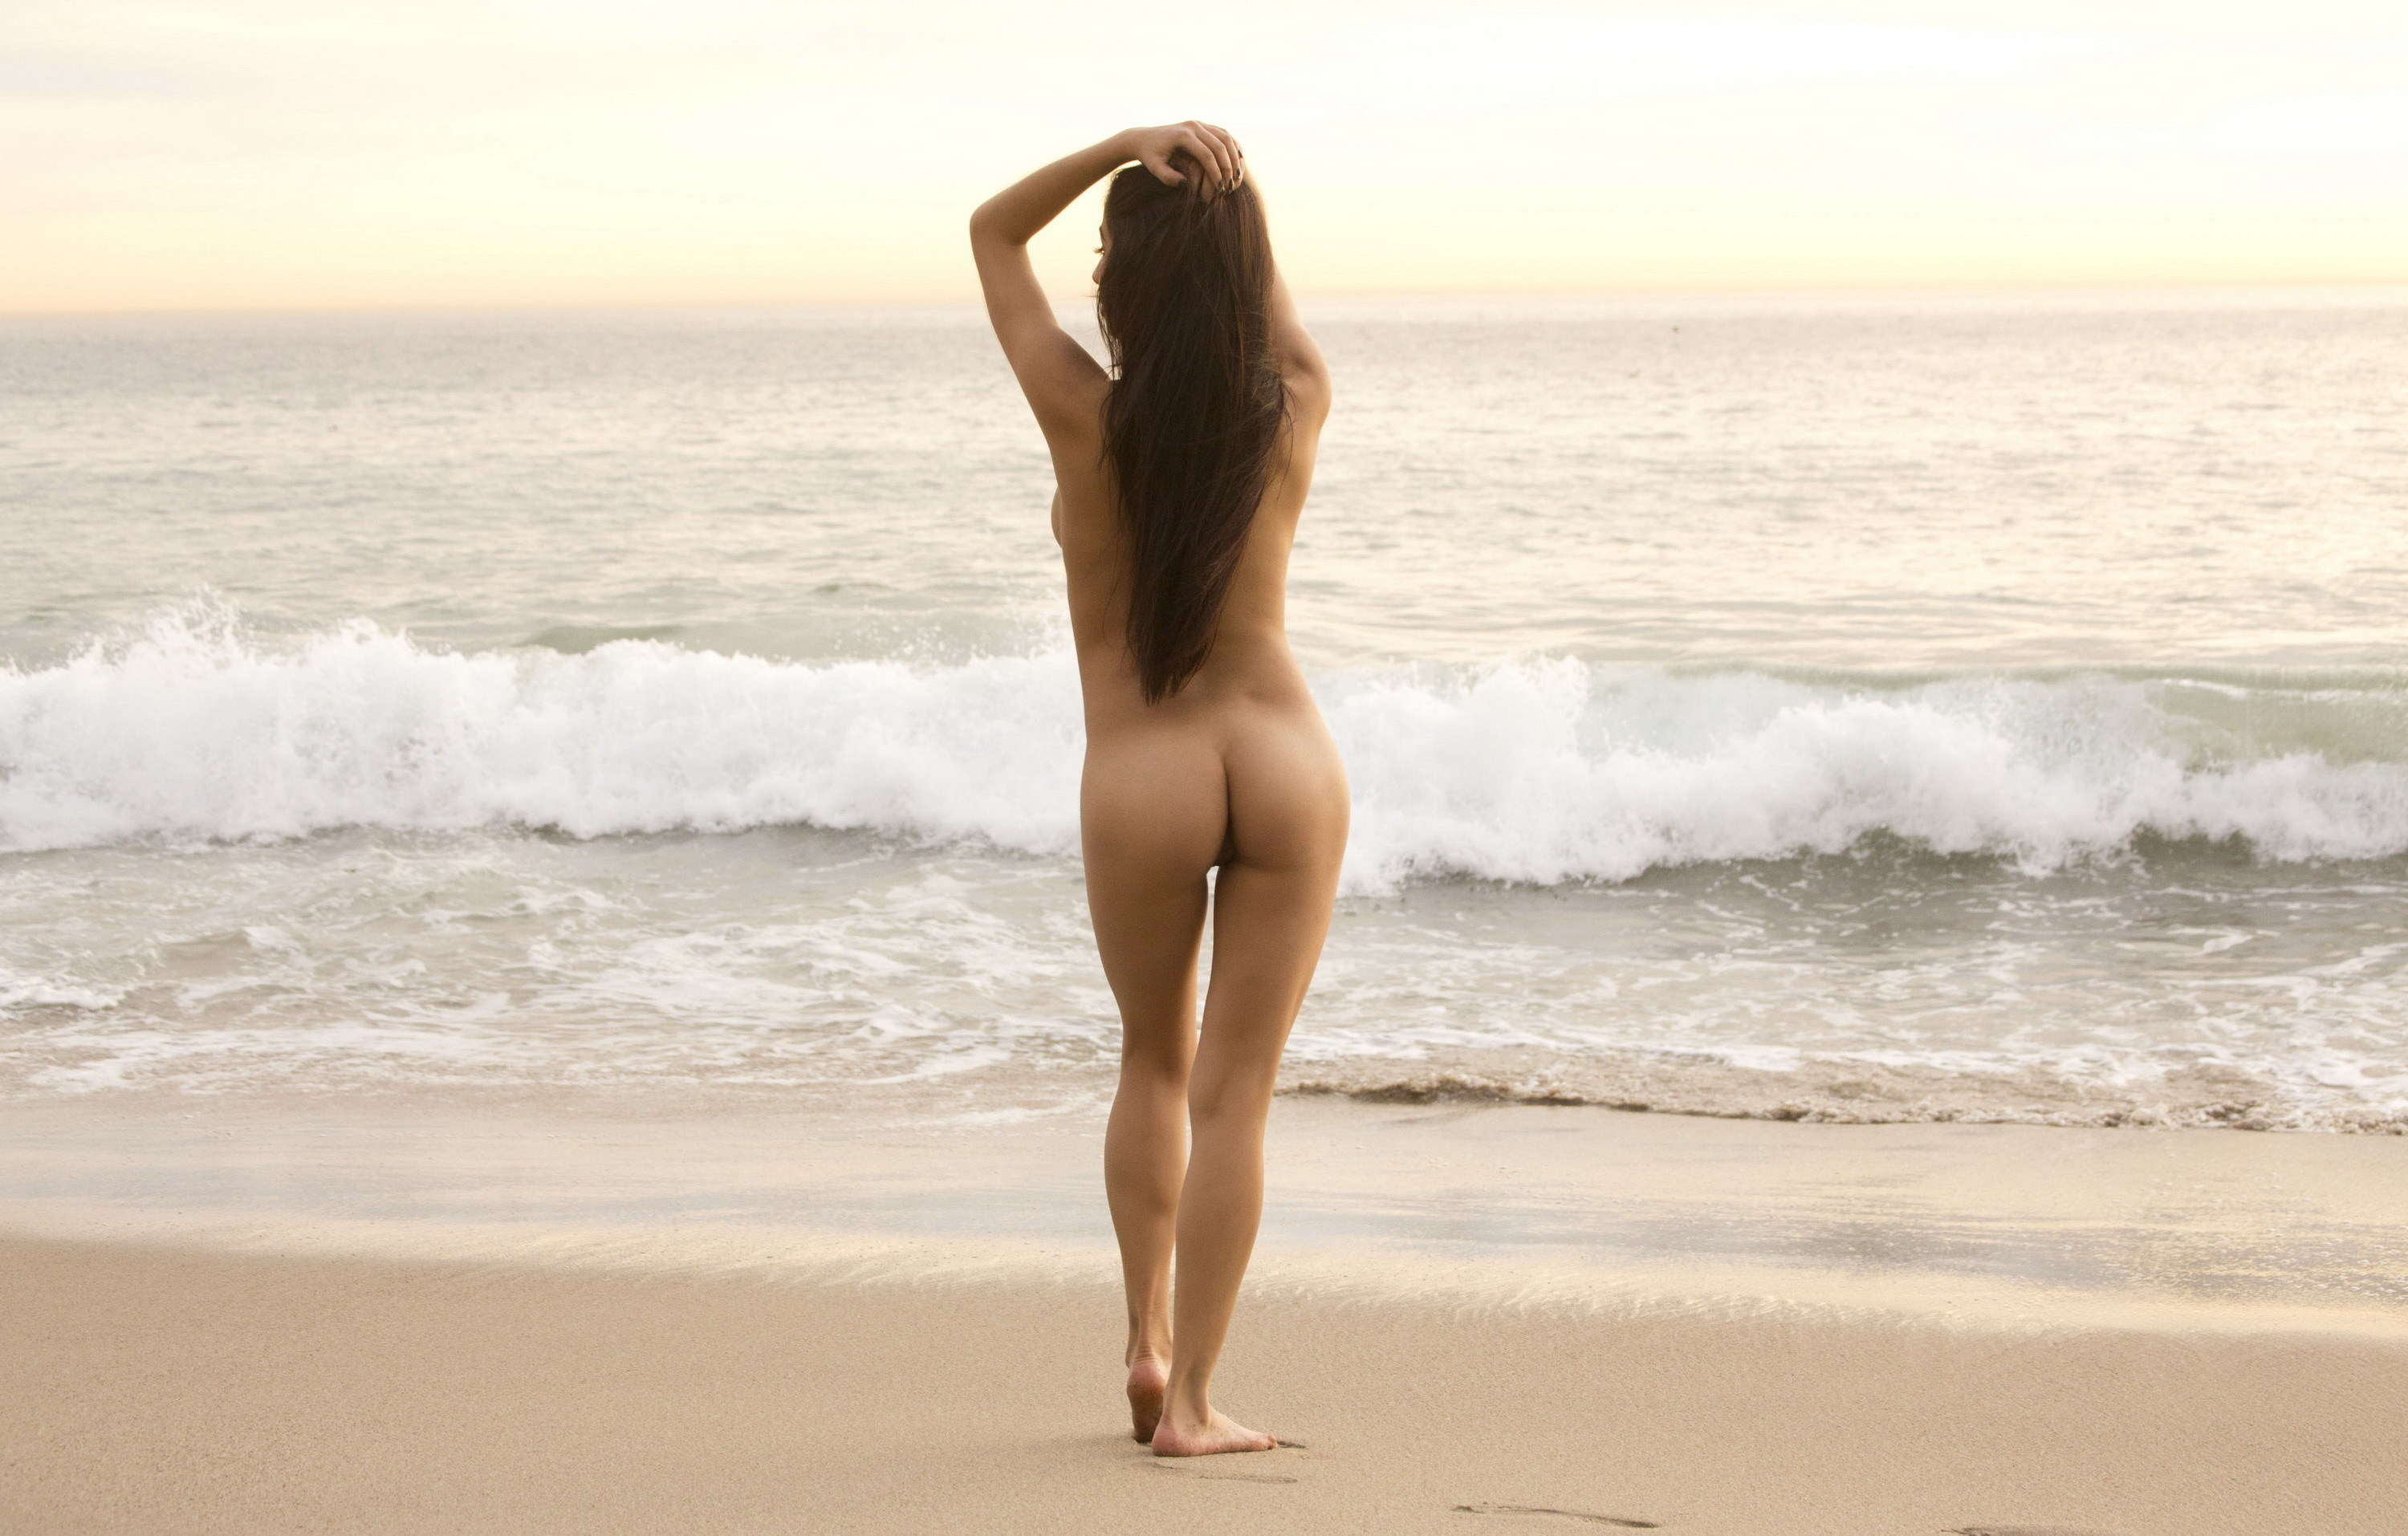 Erotic beach pic